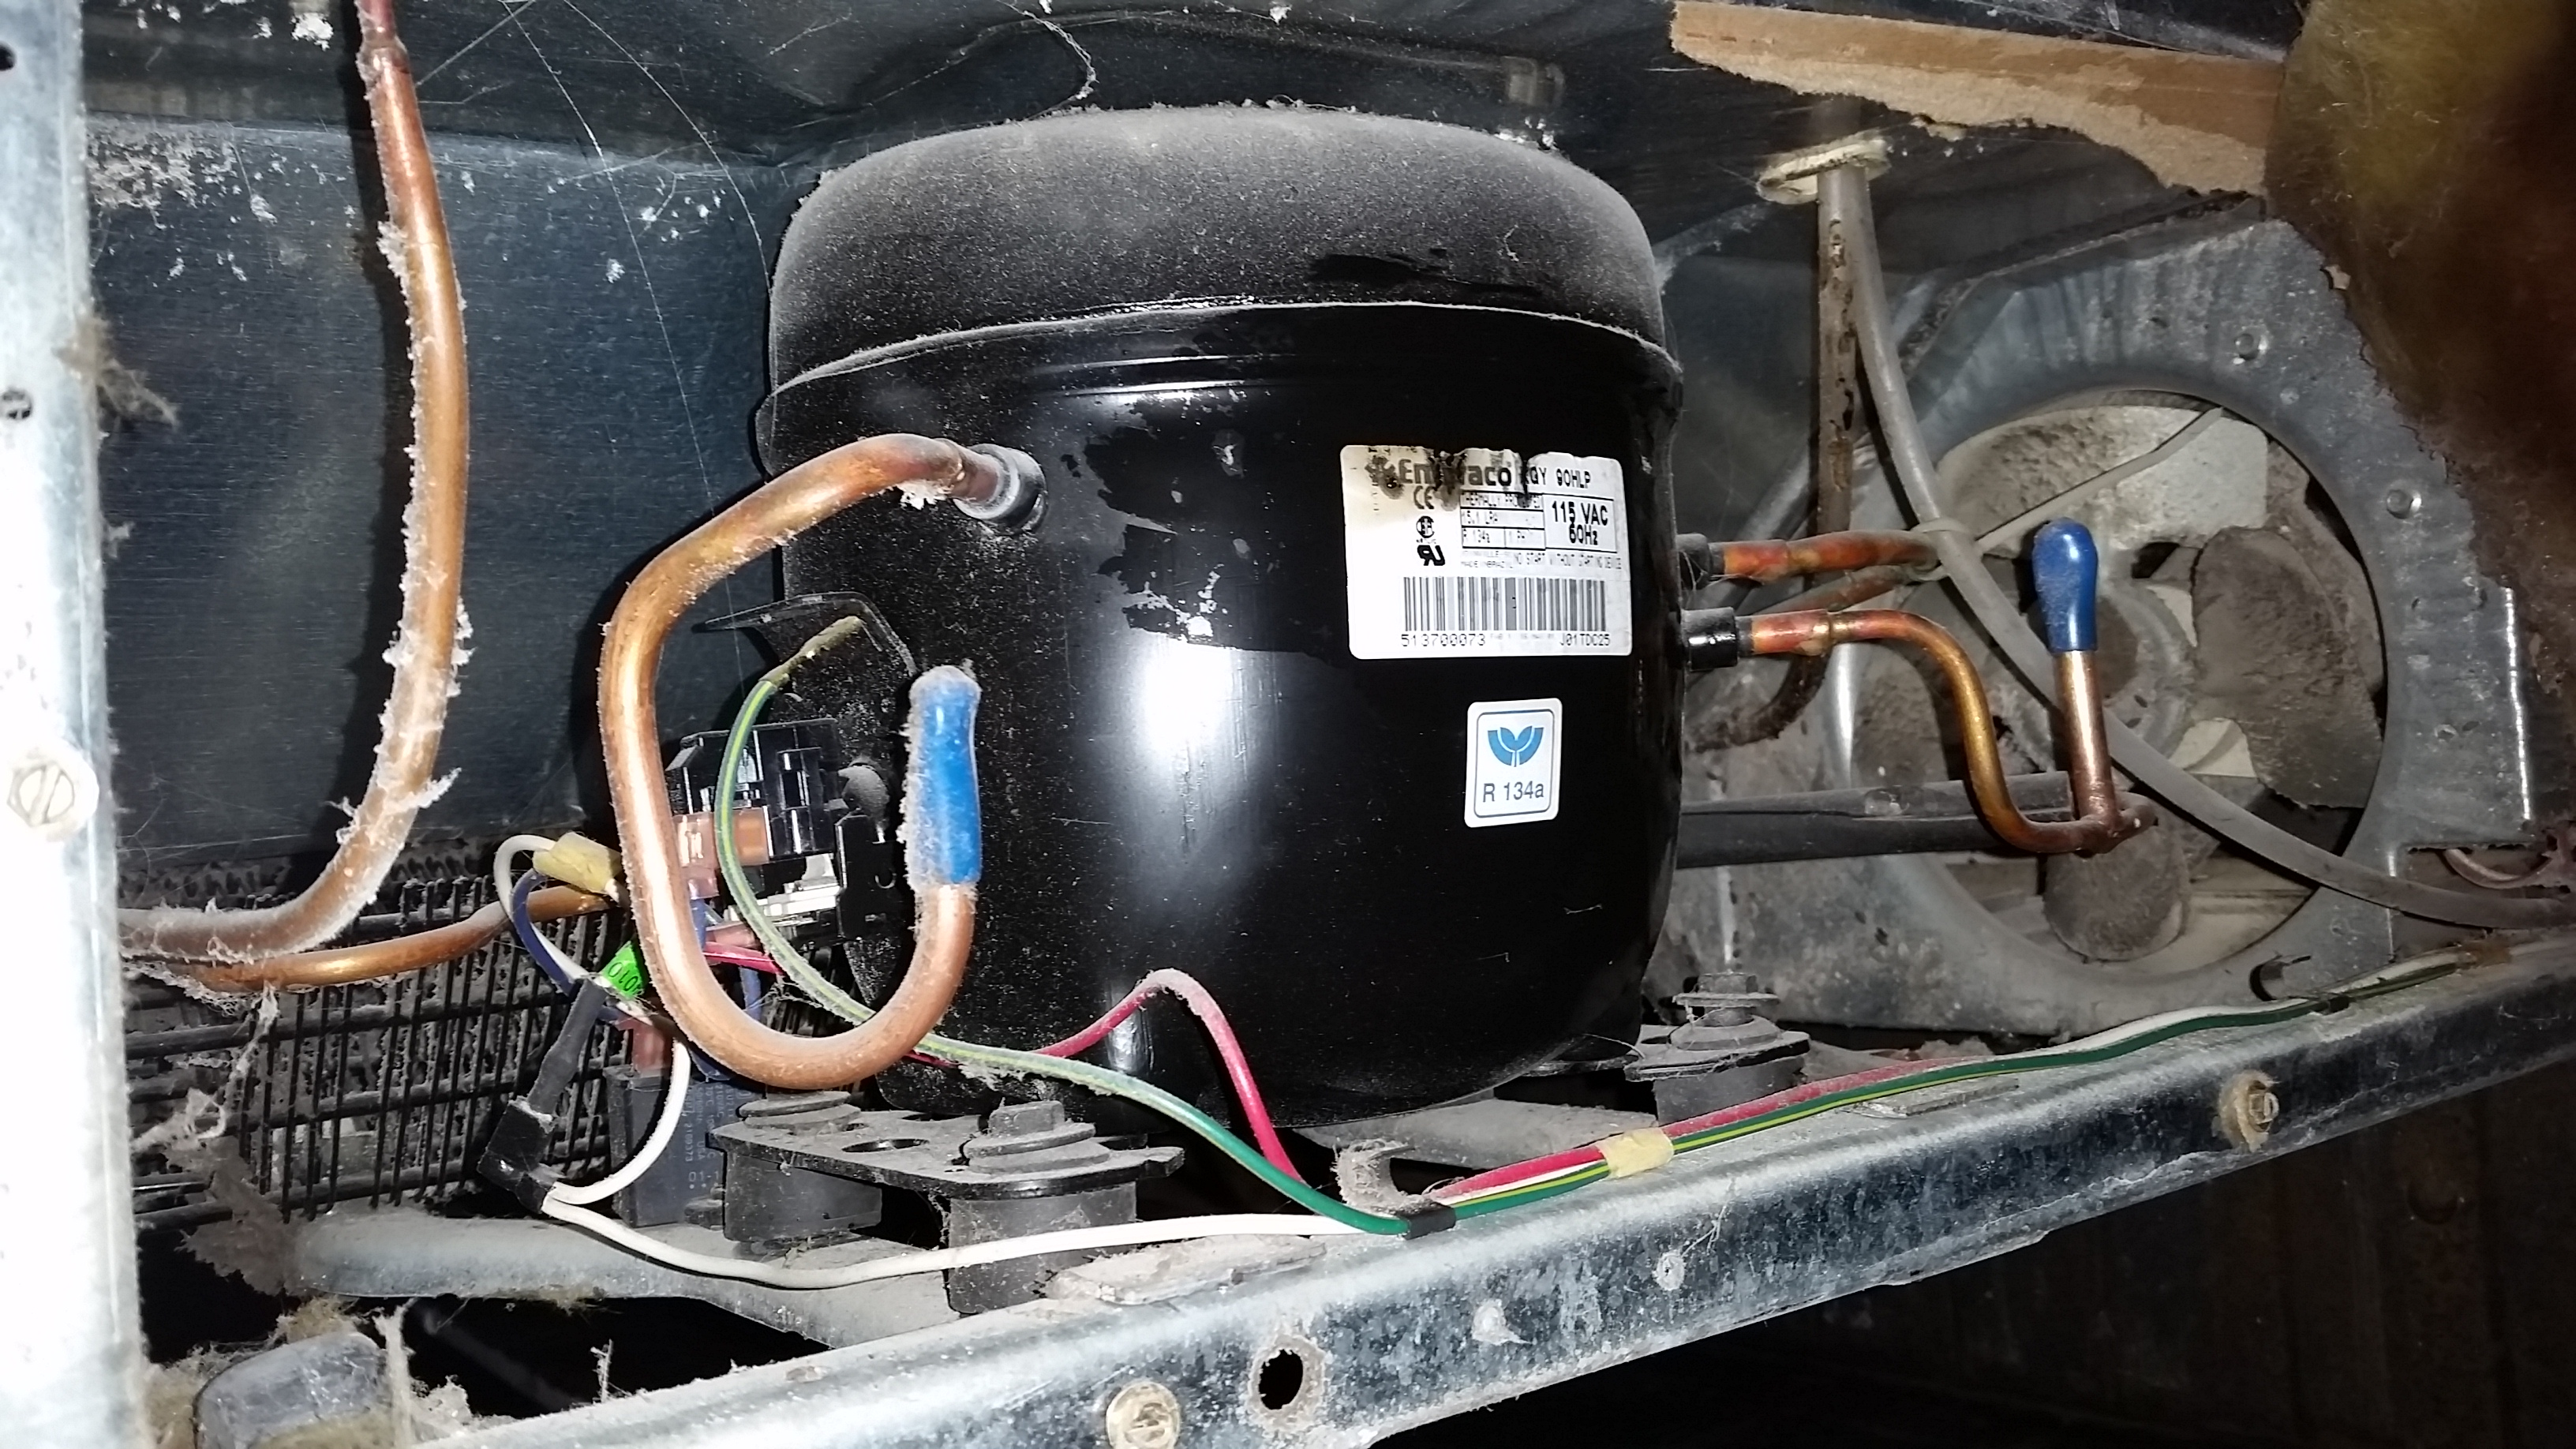 L Unite Hermetique  pressor Wiring Diagram besides Quincy Duplex Air  pressor Wiring Diagram together with Loma Iq2 Wiring Diagram likewise Loma Iq2 Wiring Diagram as well Trailer Kes Wiring Schematic. on teseh compressor wiring diagram